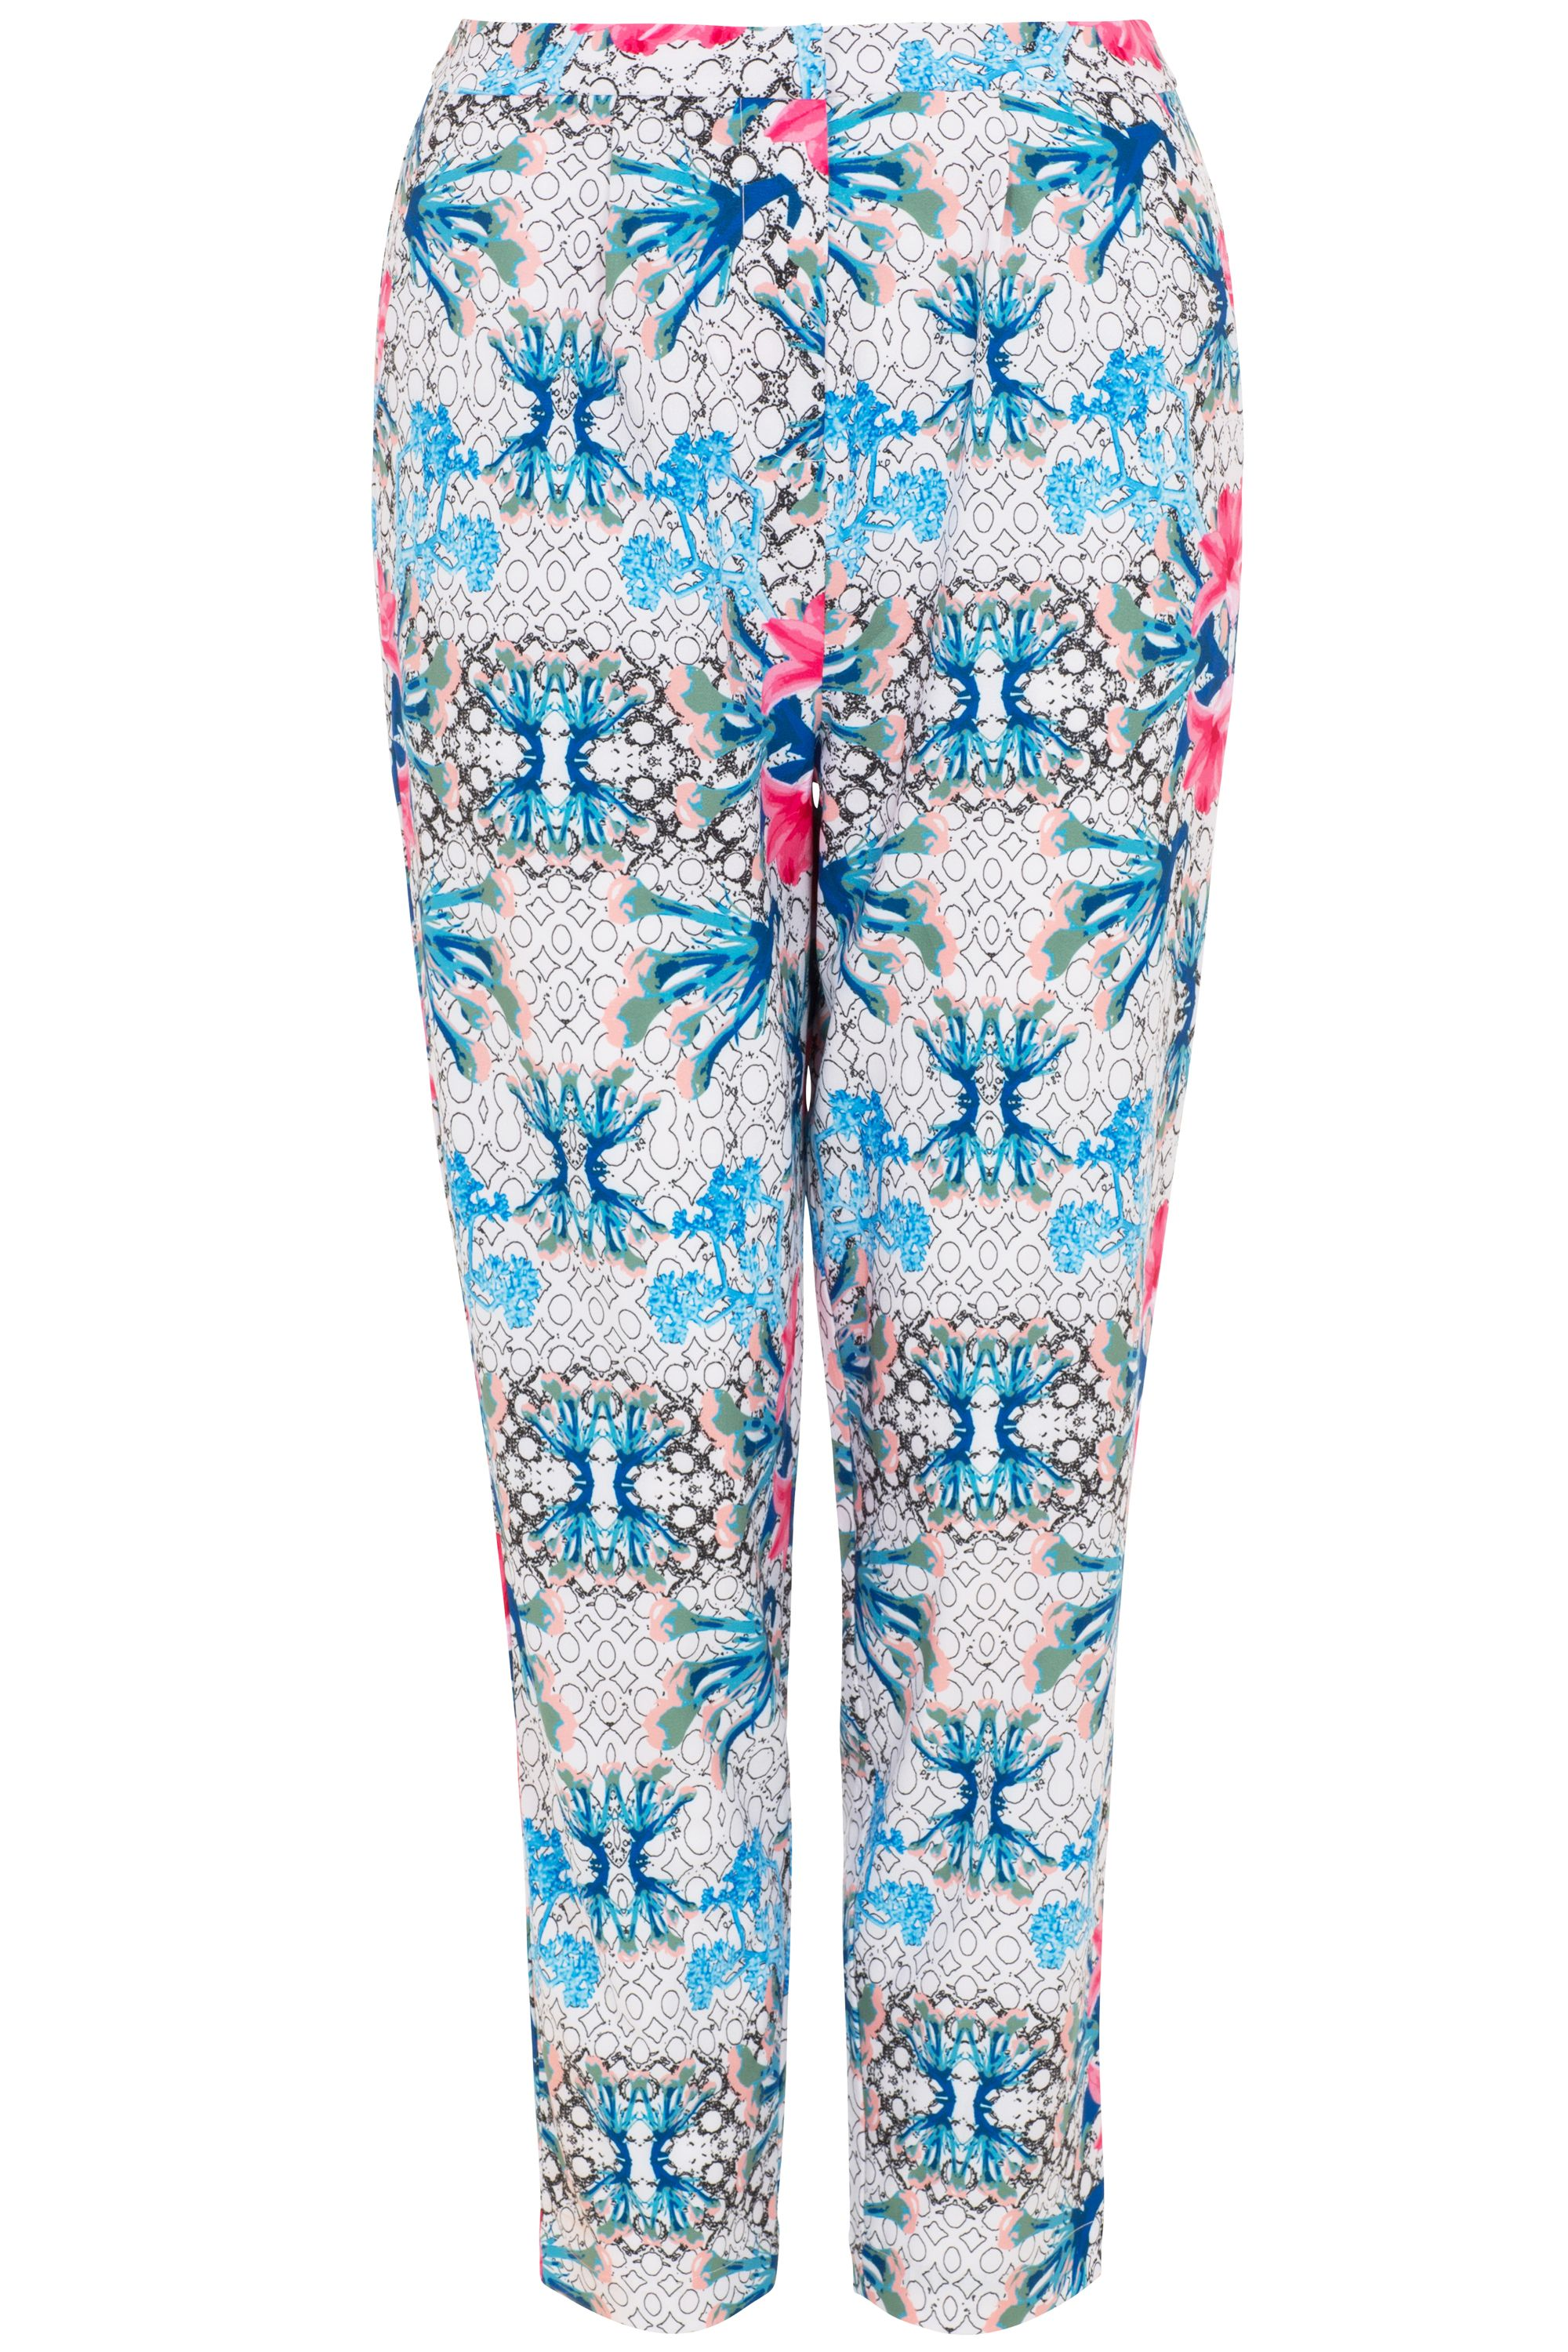 Wolf & Whistle Wolf & Whistle Geometric Floral Print Trousers, White